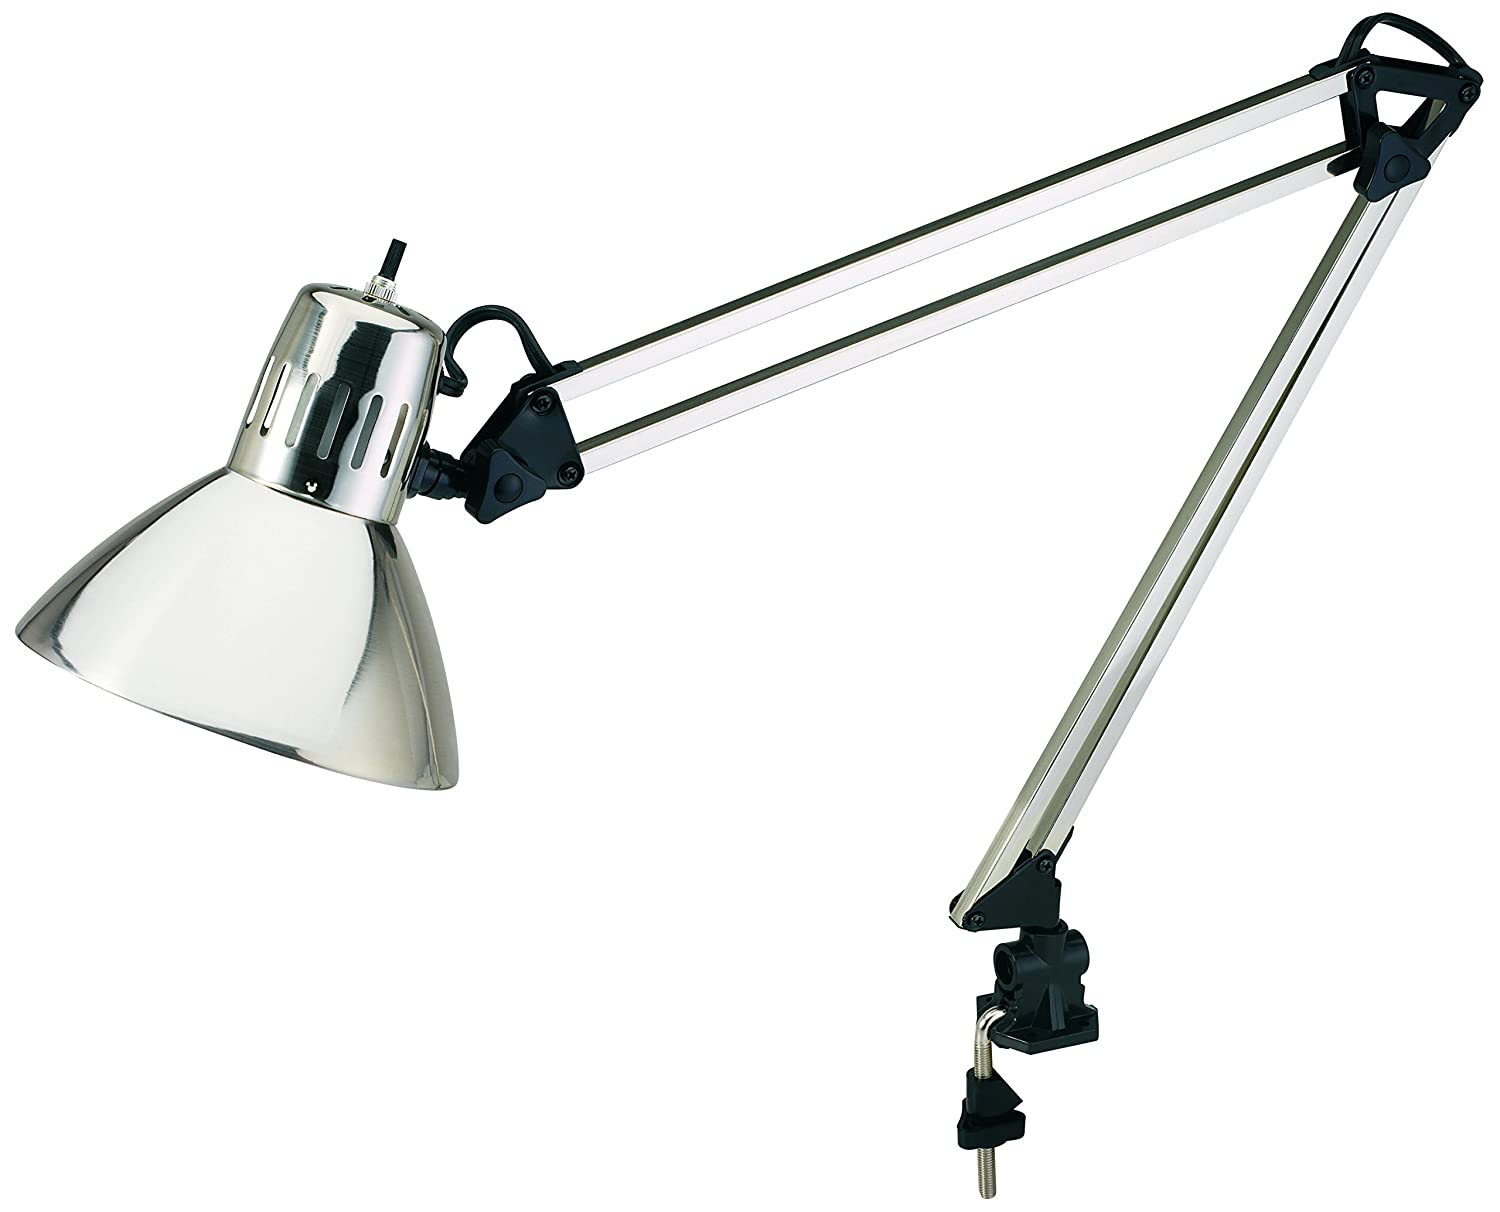 v light architect style cfl swing arm task lamp with non skid table desk clamp ebay. Black Bedroom Furniture Sets. Home Design Ideas